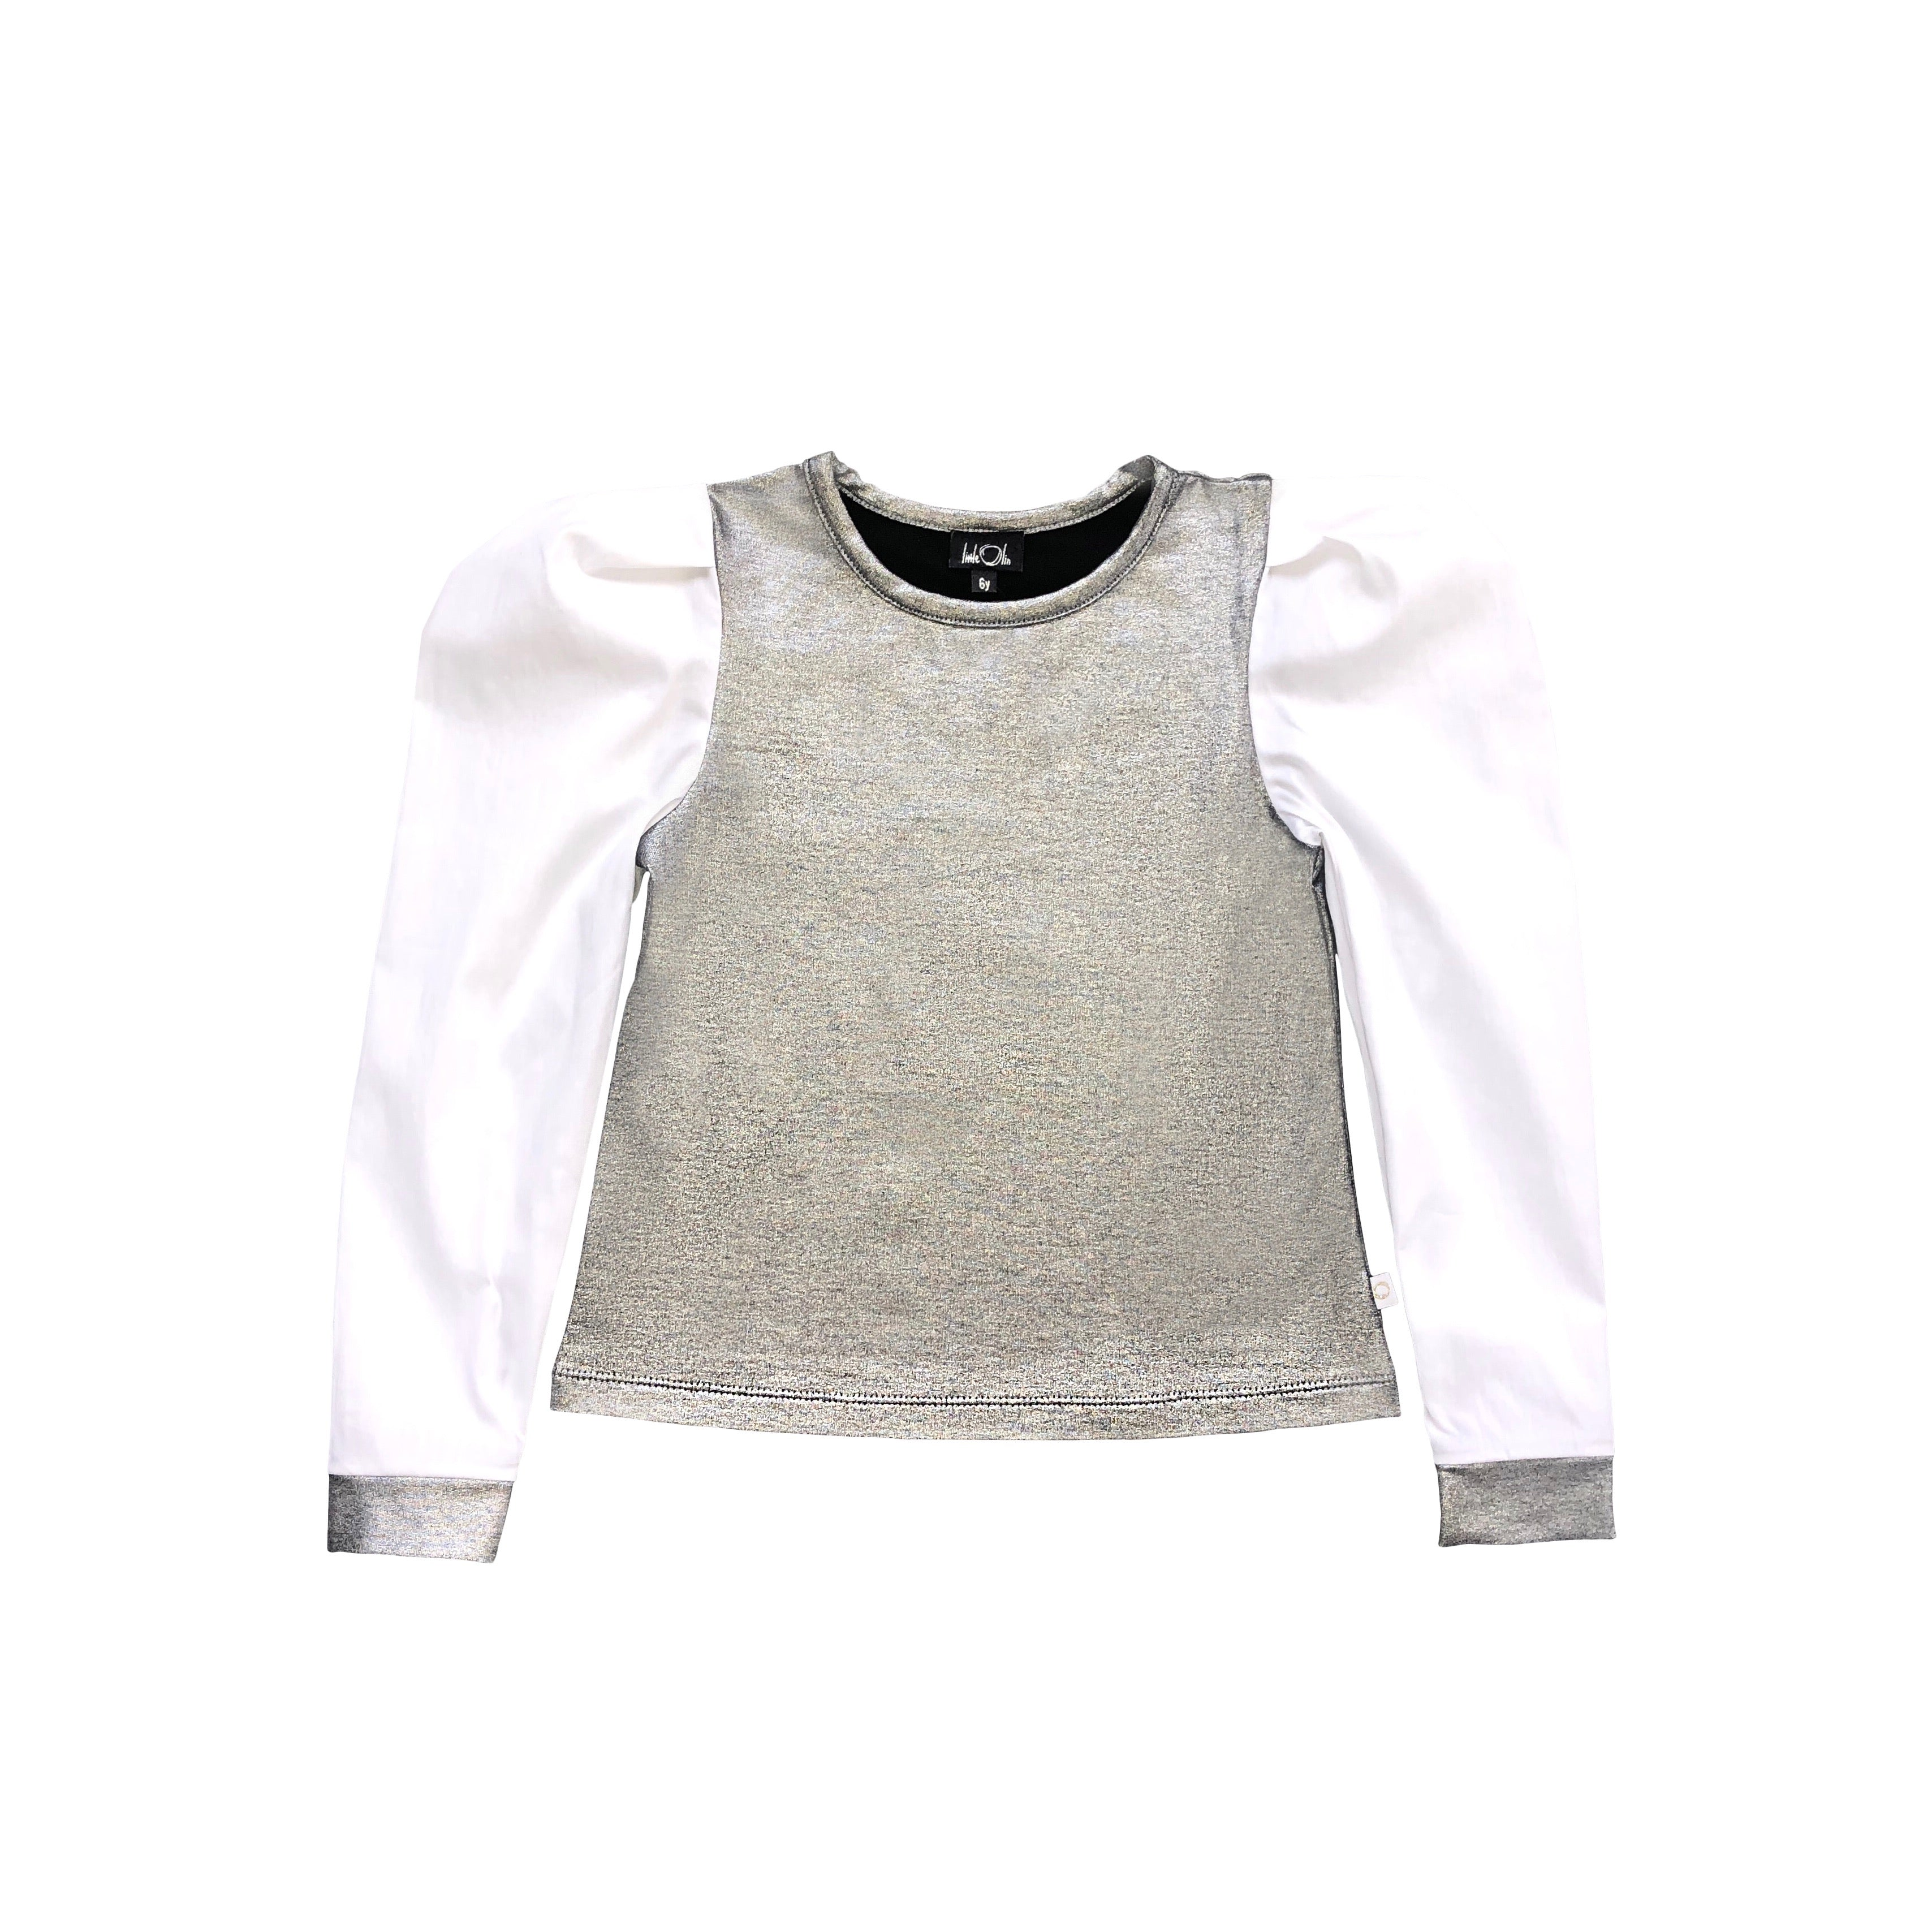 AW20/21 Puffed Sleeve Silver Blouse